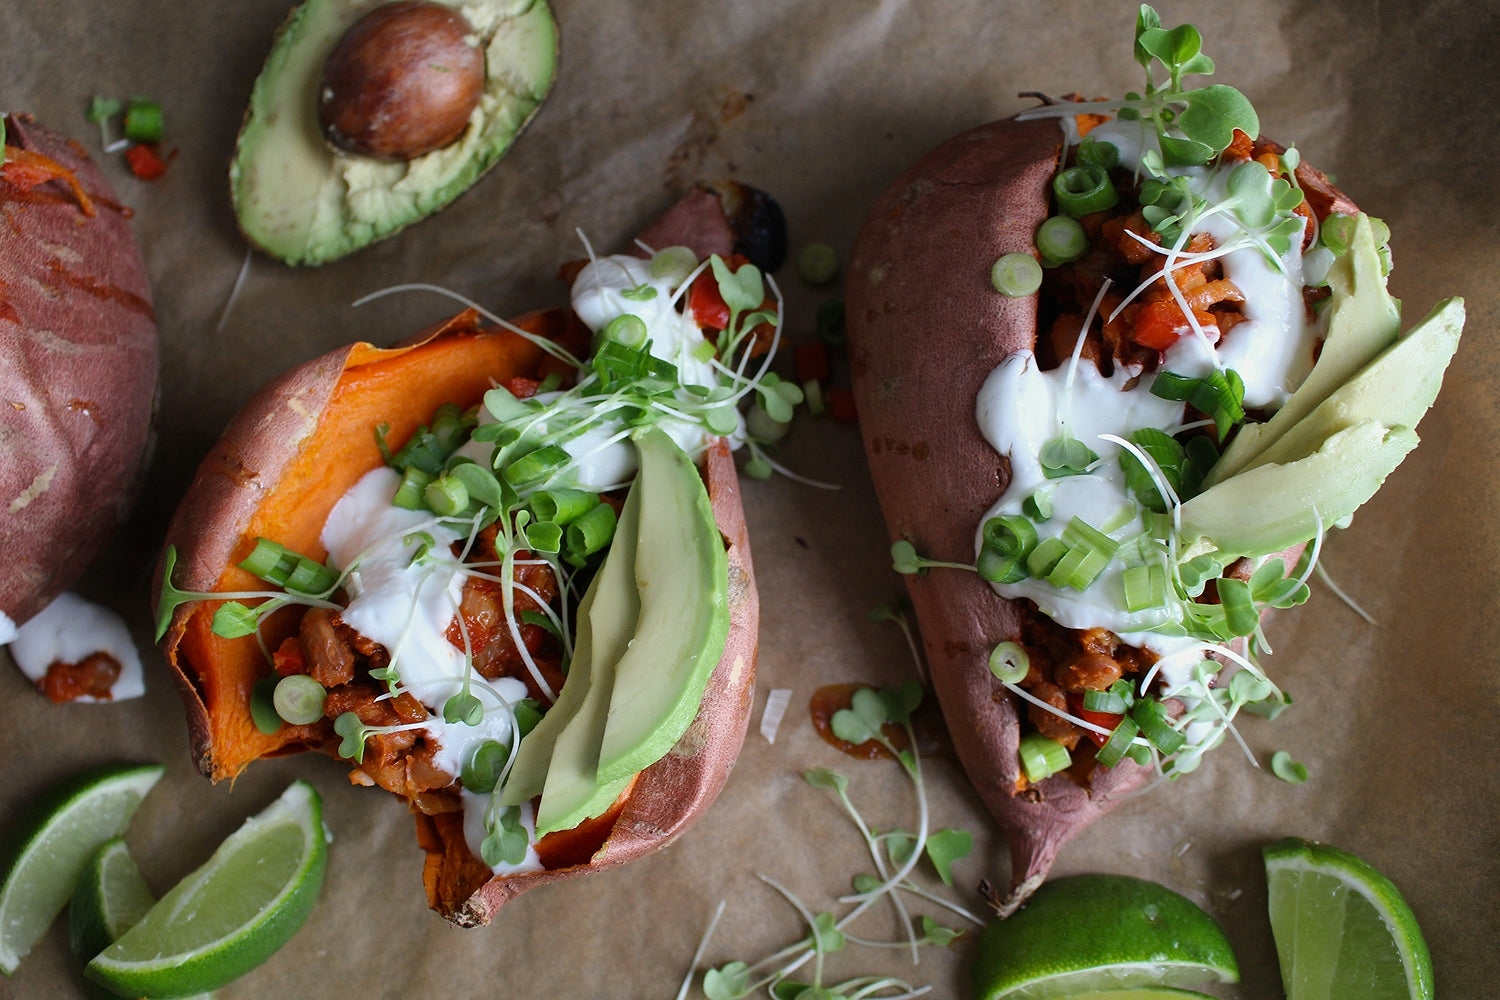 Stuffed sweet potatoes with sour cream, avocados, sprouts